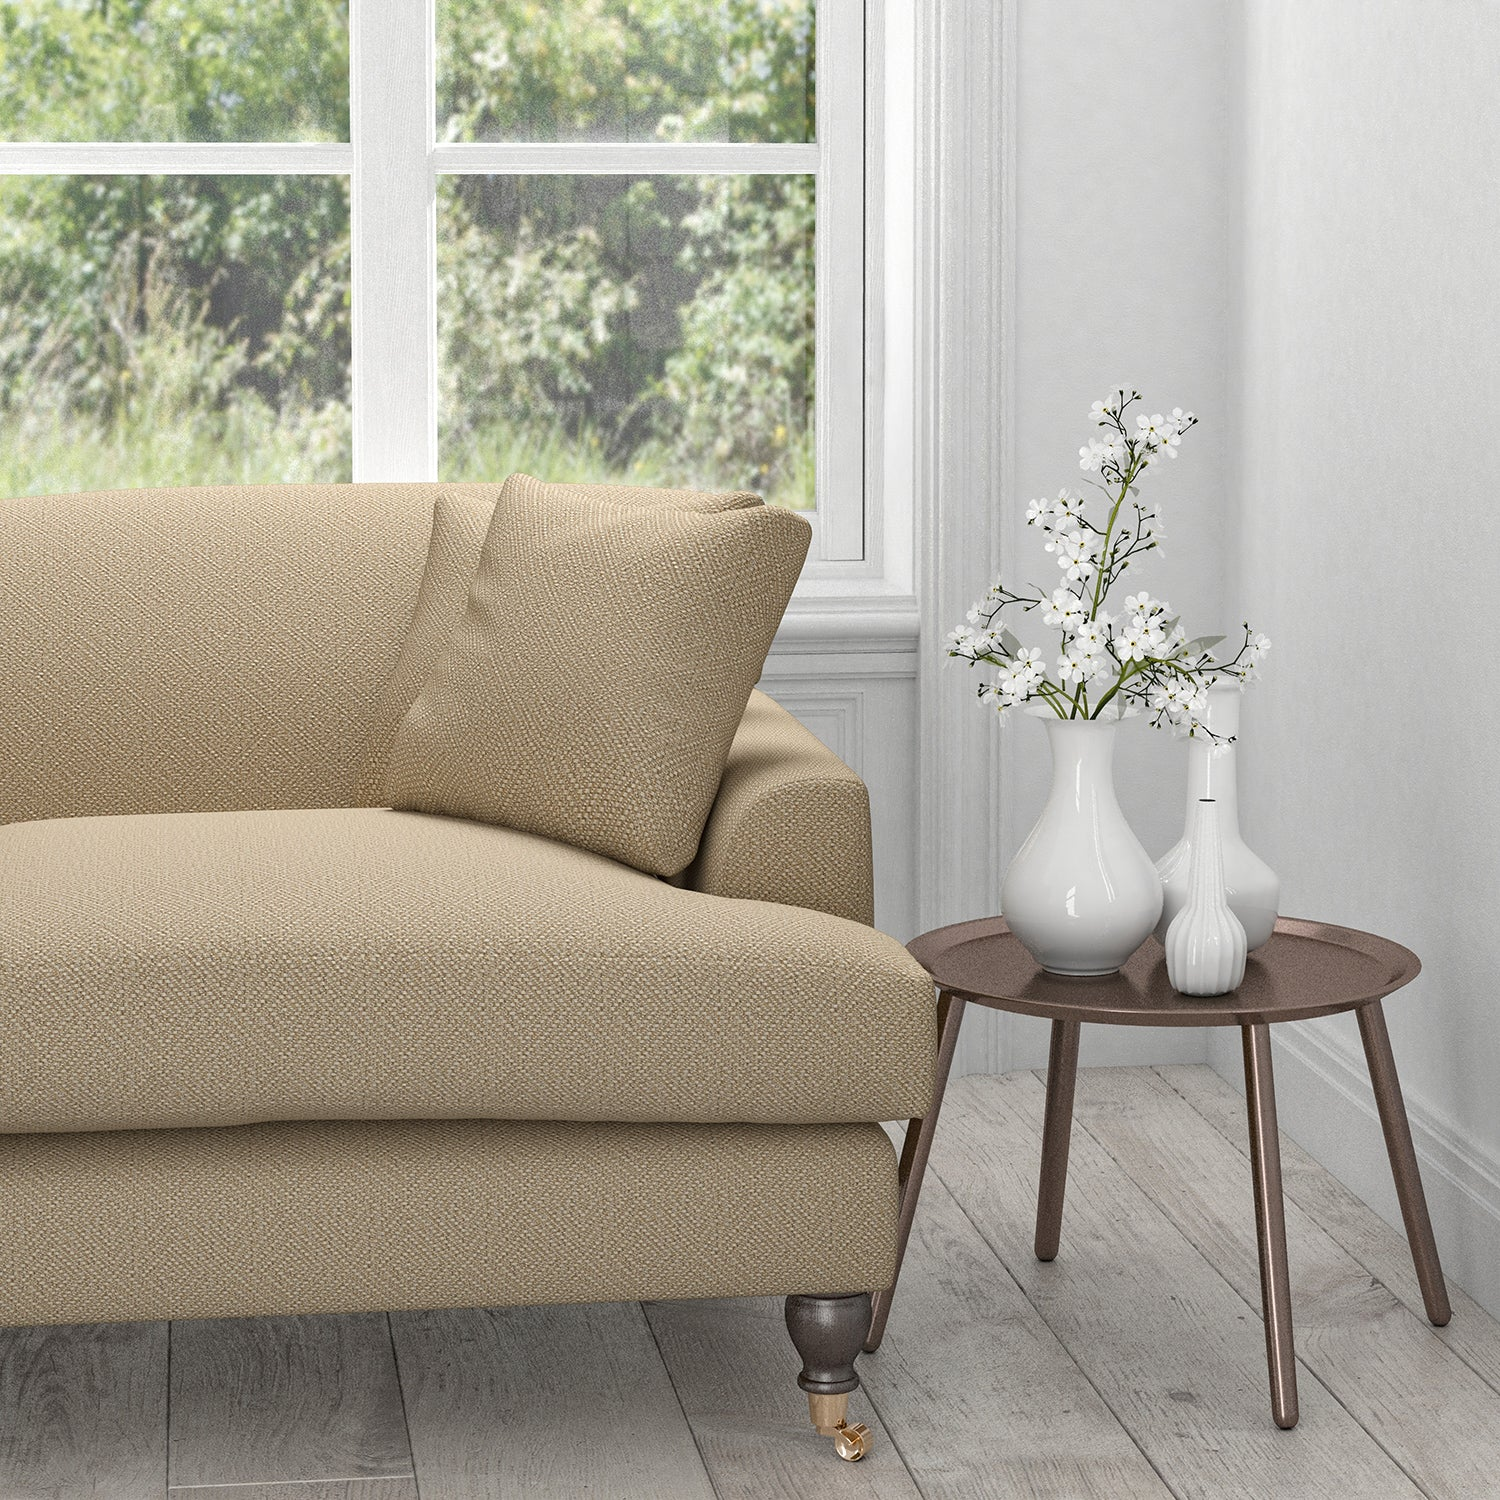 Sofa in a neutral fabric with a light neutral geometric woven design